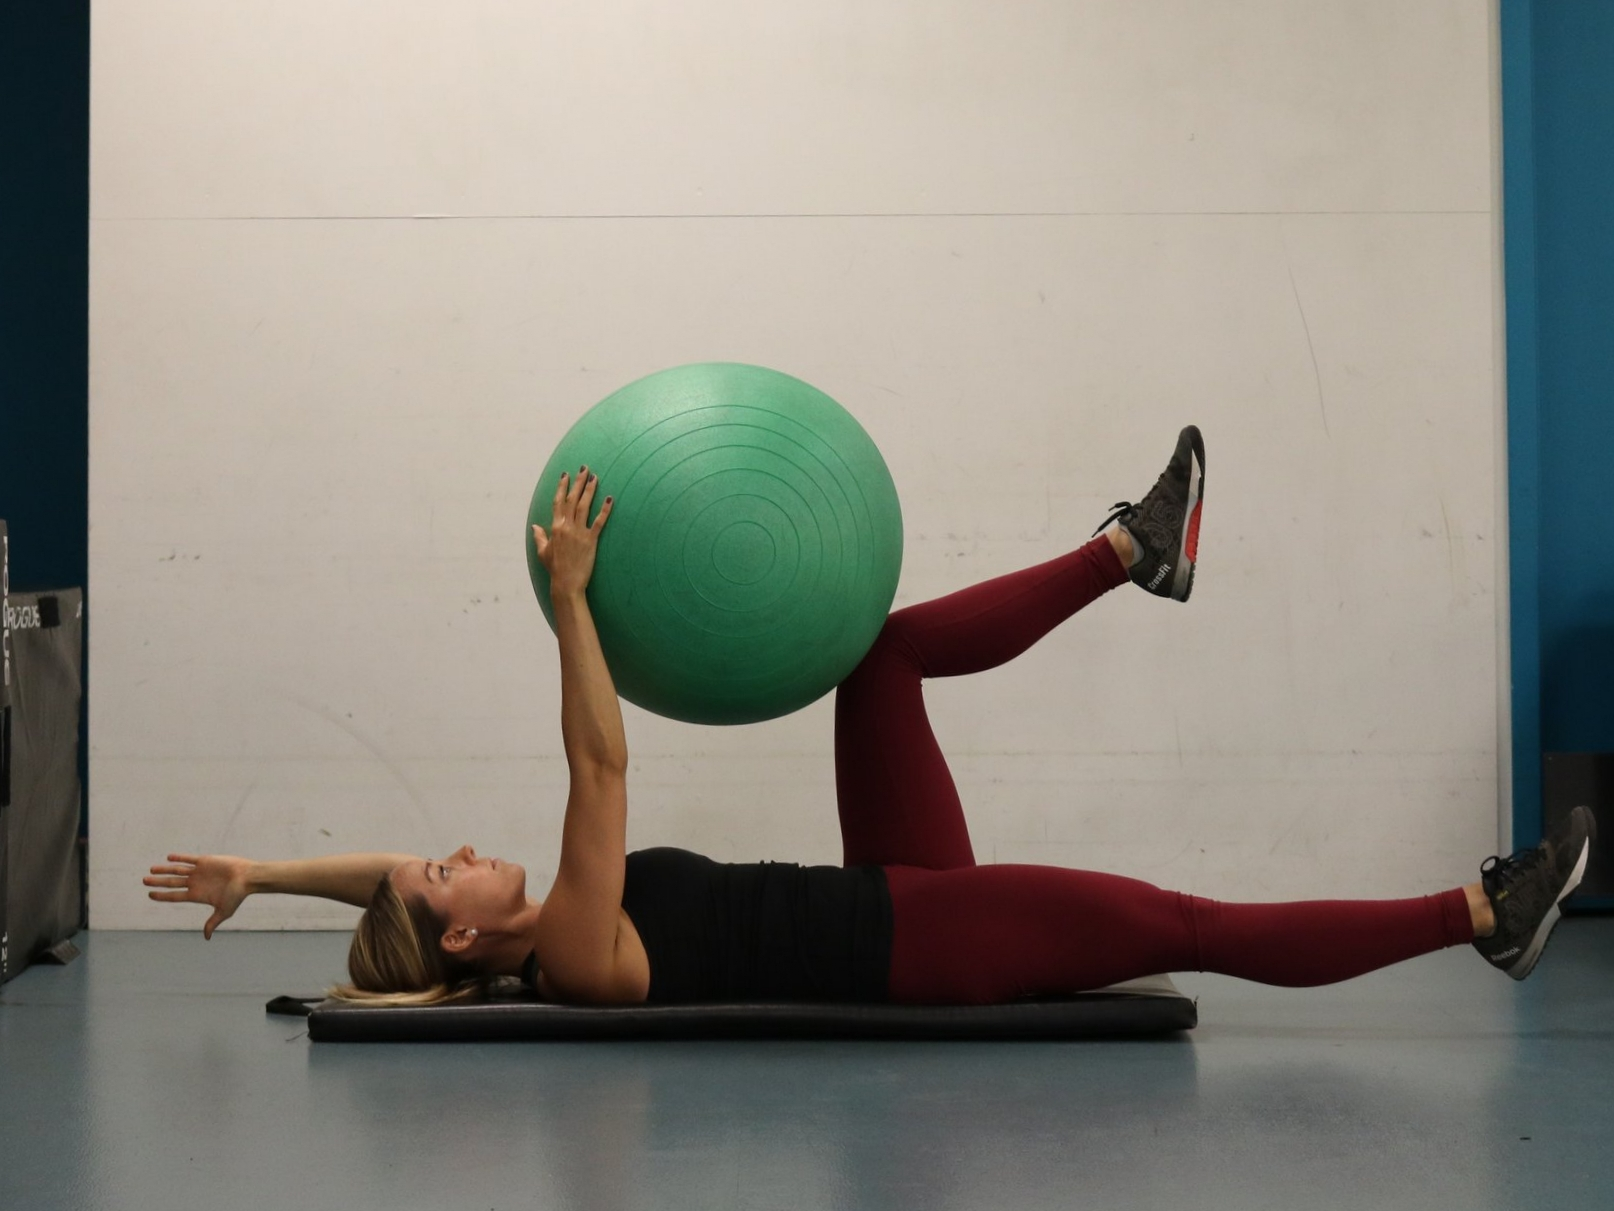 Extend left arm and right leg